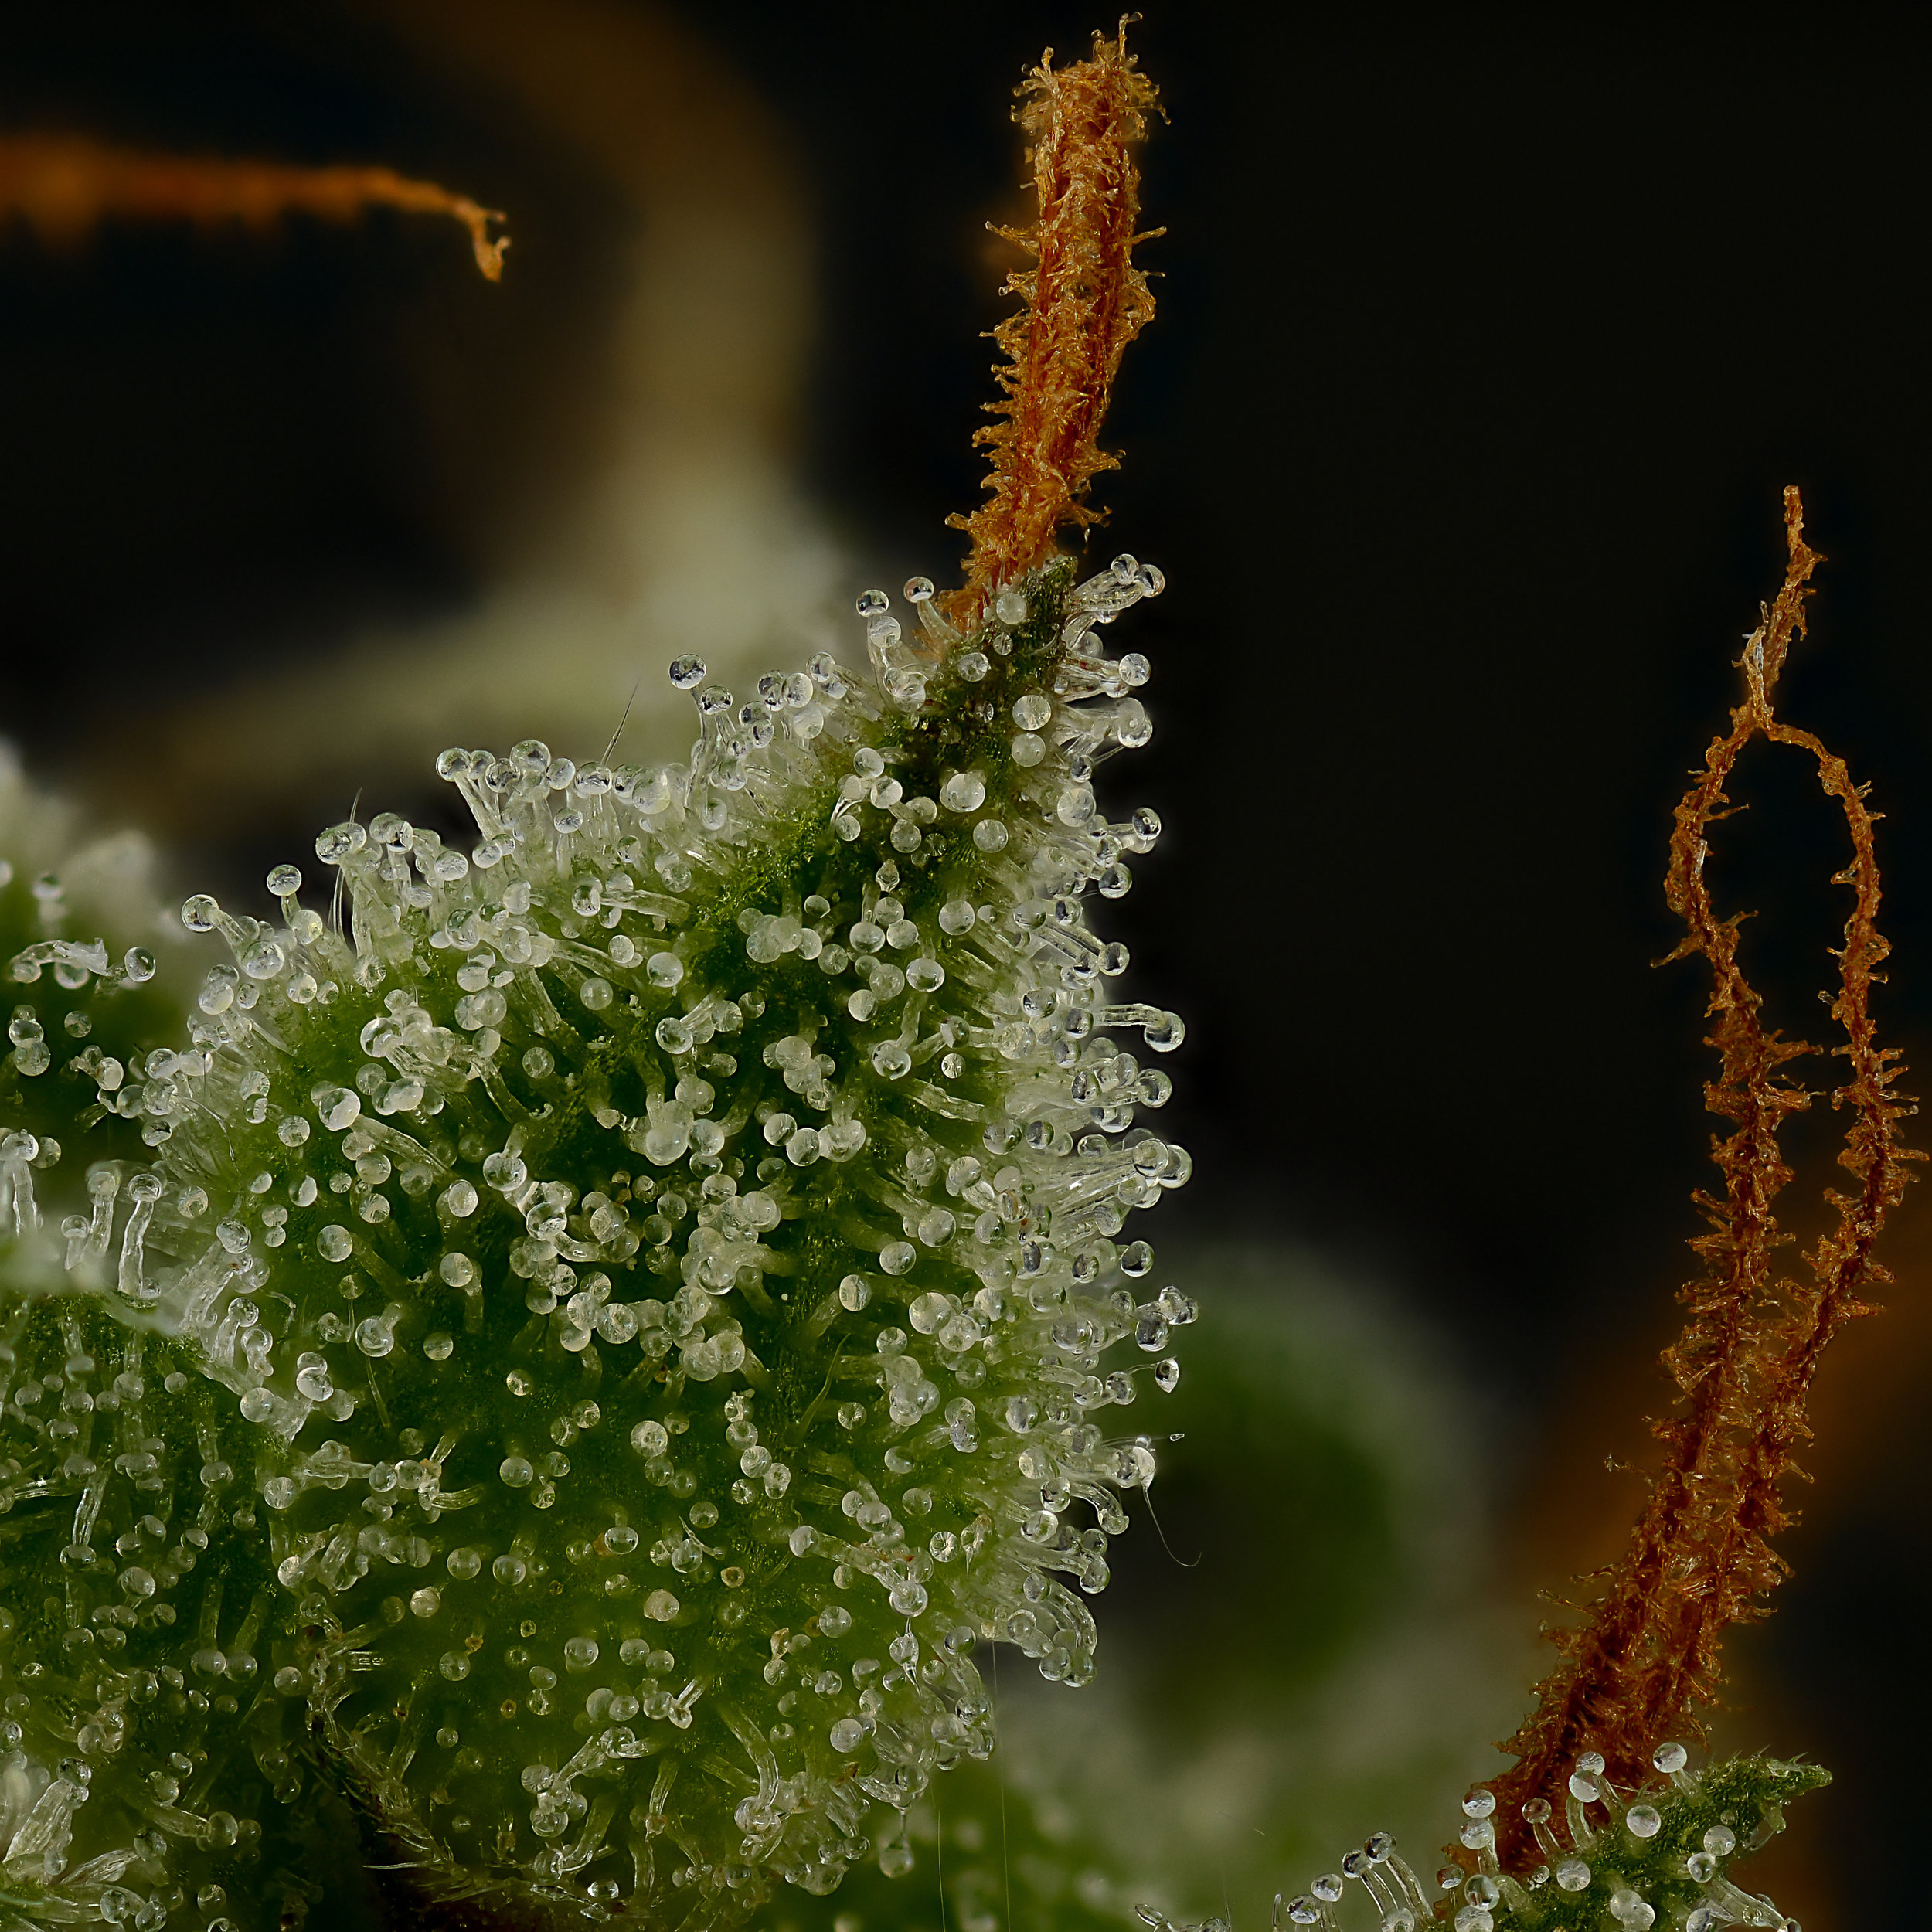 Molokai frost X Killingfields seeded cannabis